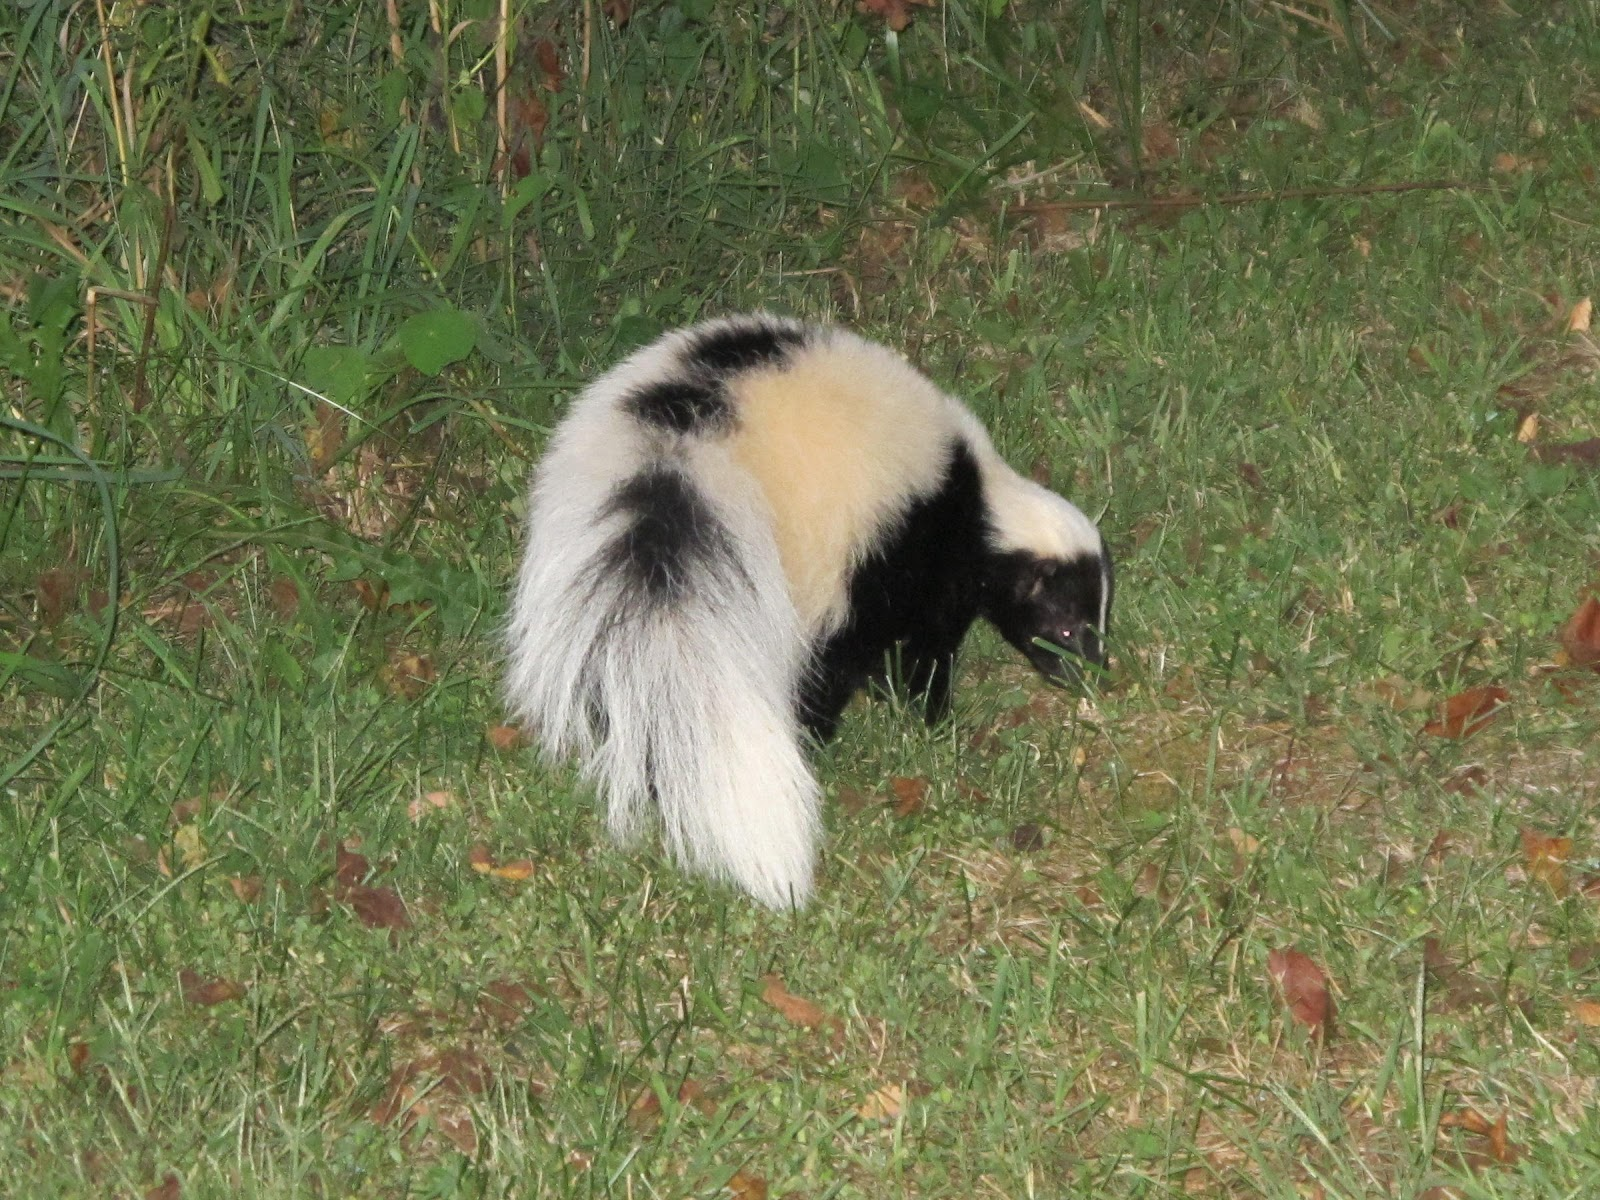 how to kill a skunk in ontario